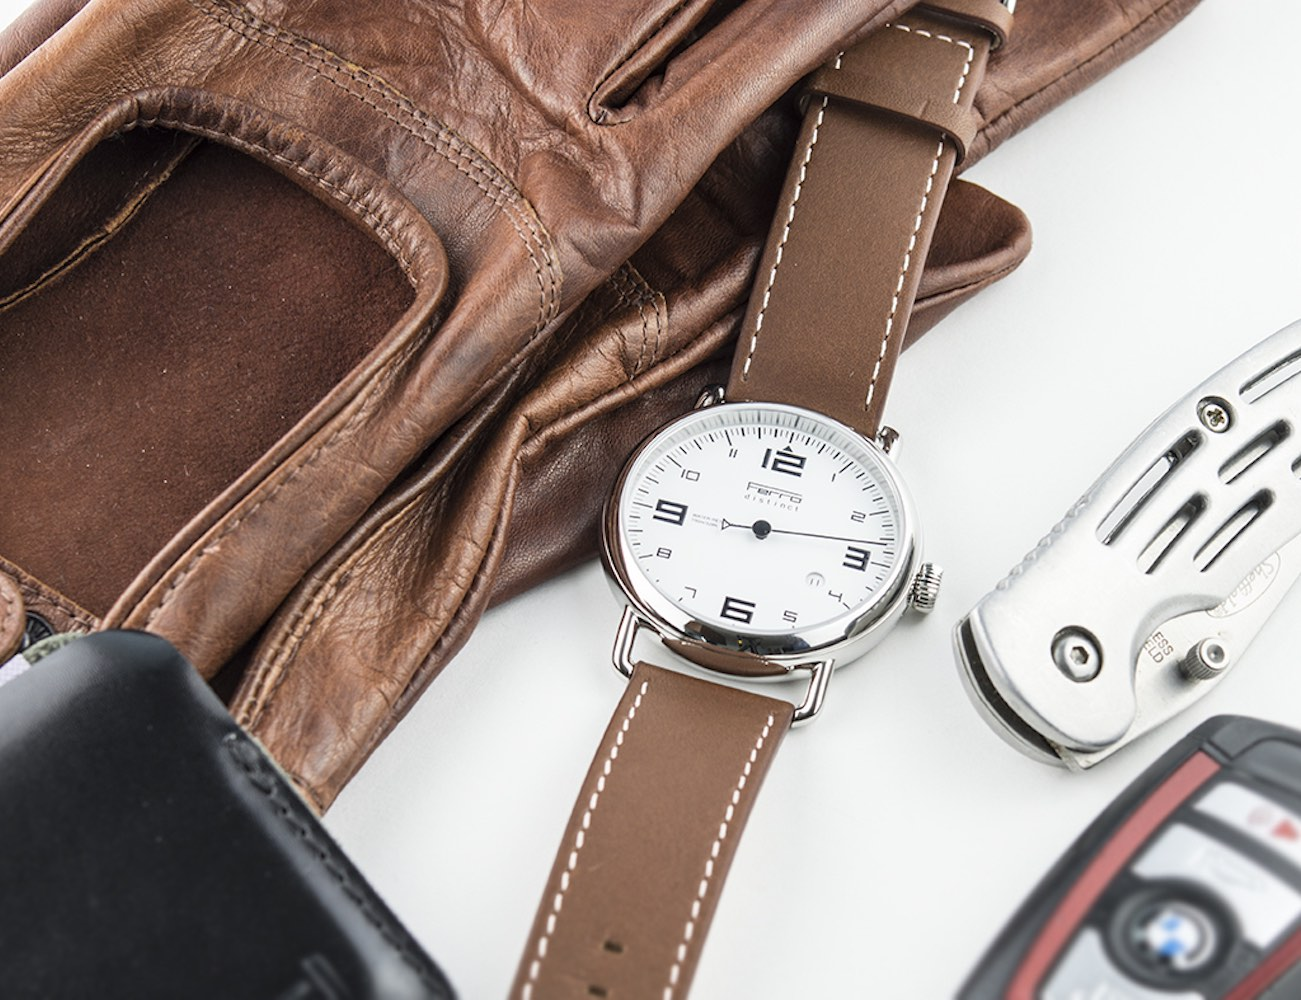 Ferro Watch – A Timepiece Redefined by Porsche Tachometers